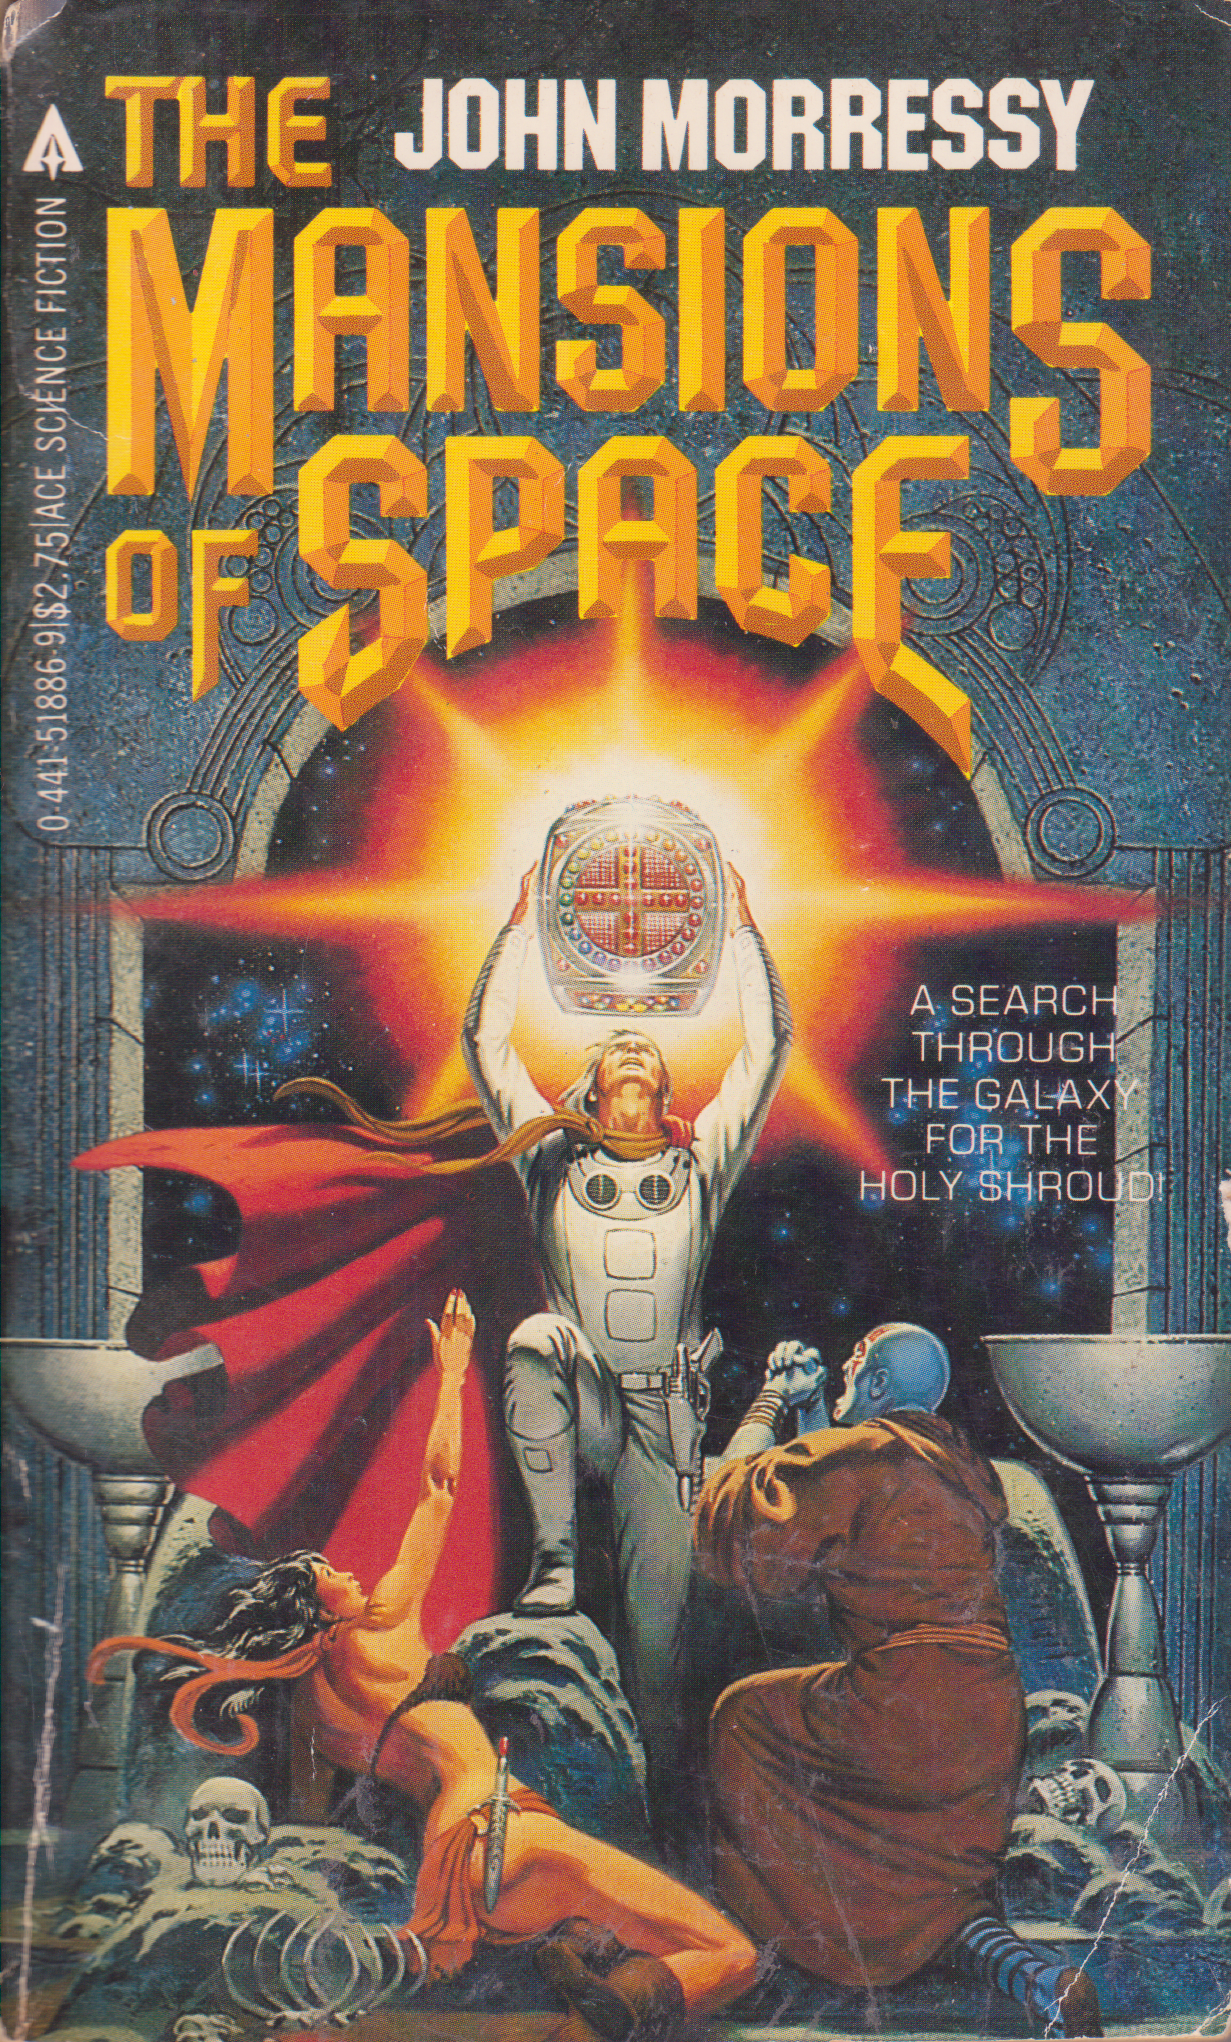 The Mansions of Space – Schlock Value